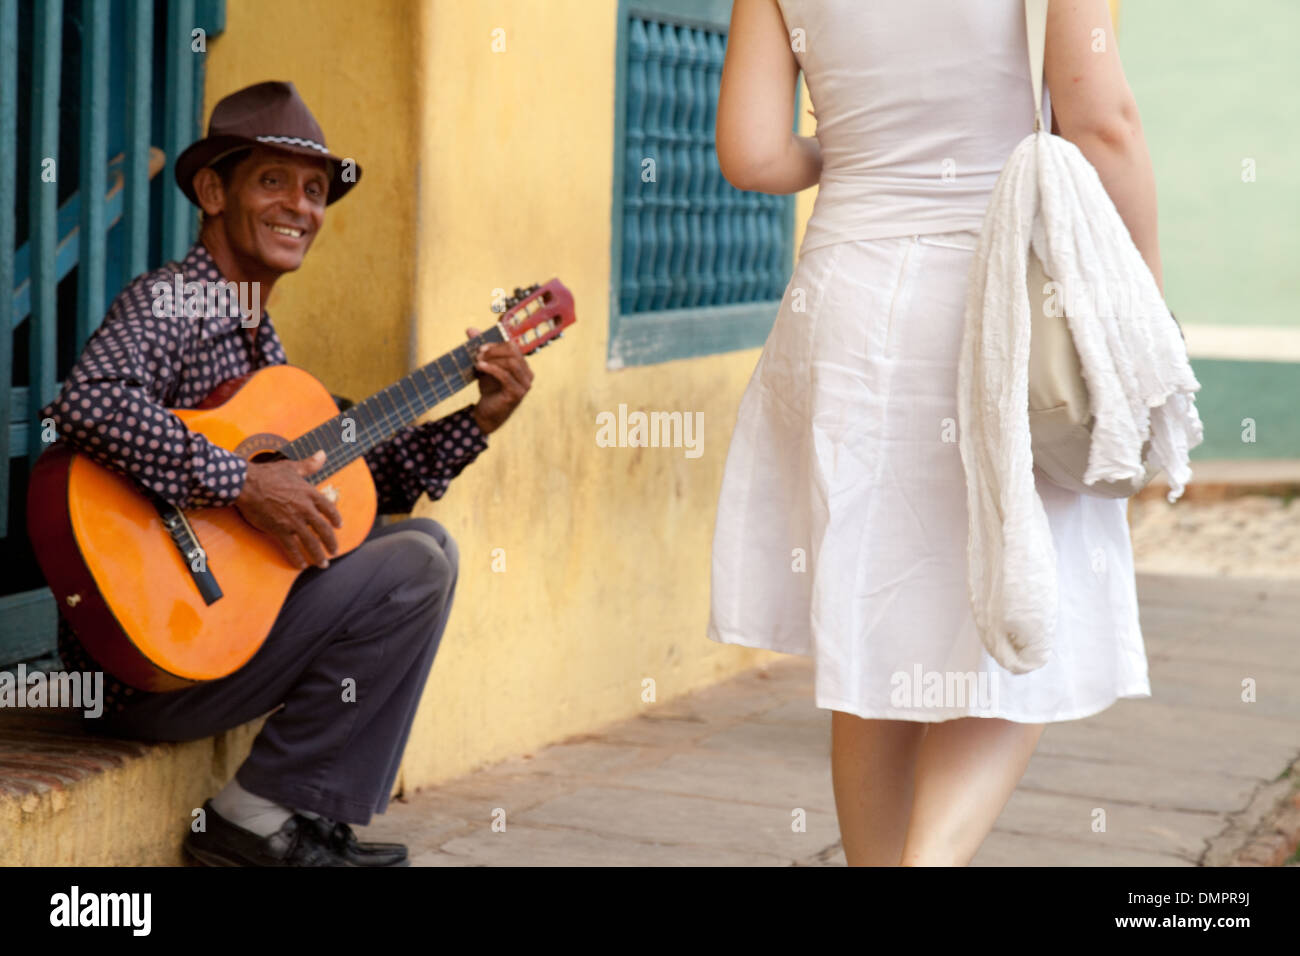 A  guitarist playing in this street scene as a woman walks past - Cuban culture in Trinidad, Cuba, Caribbean, Latin America - Stock Image